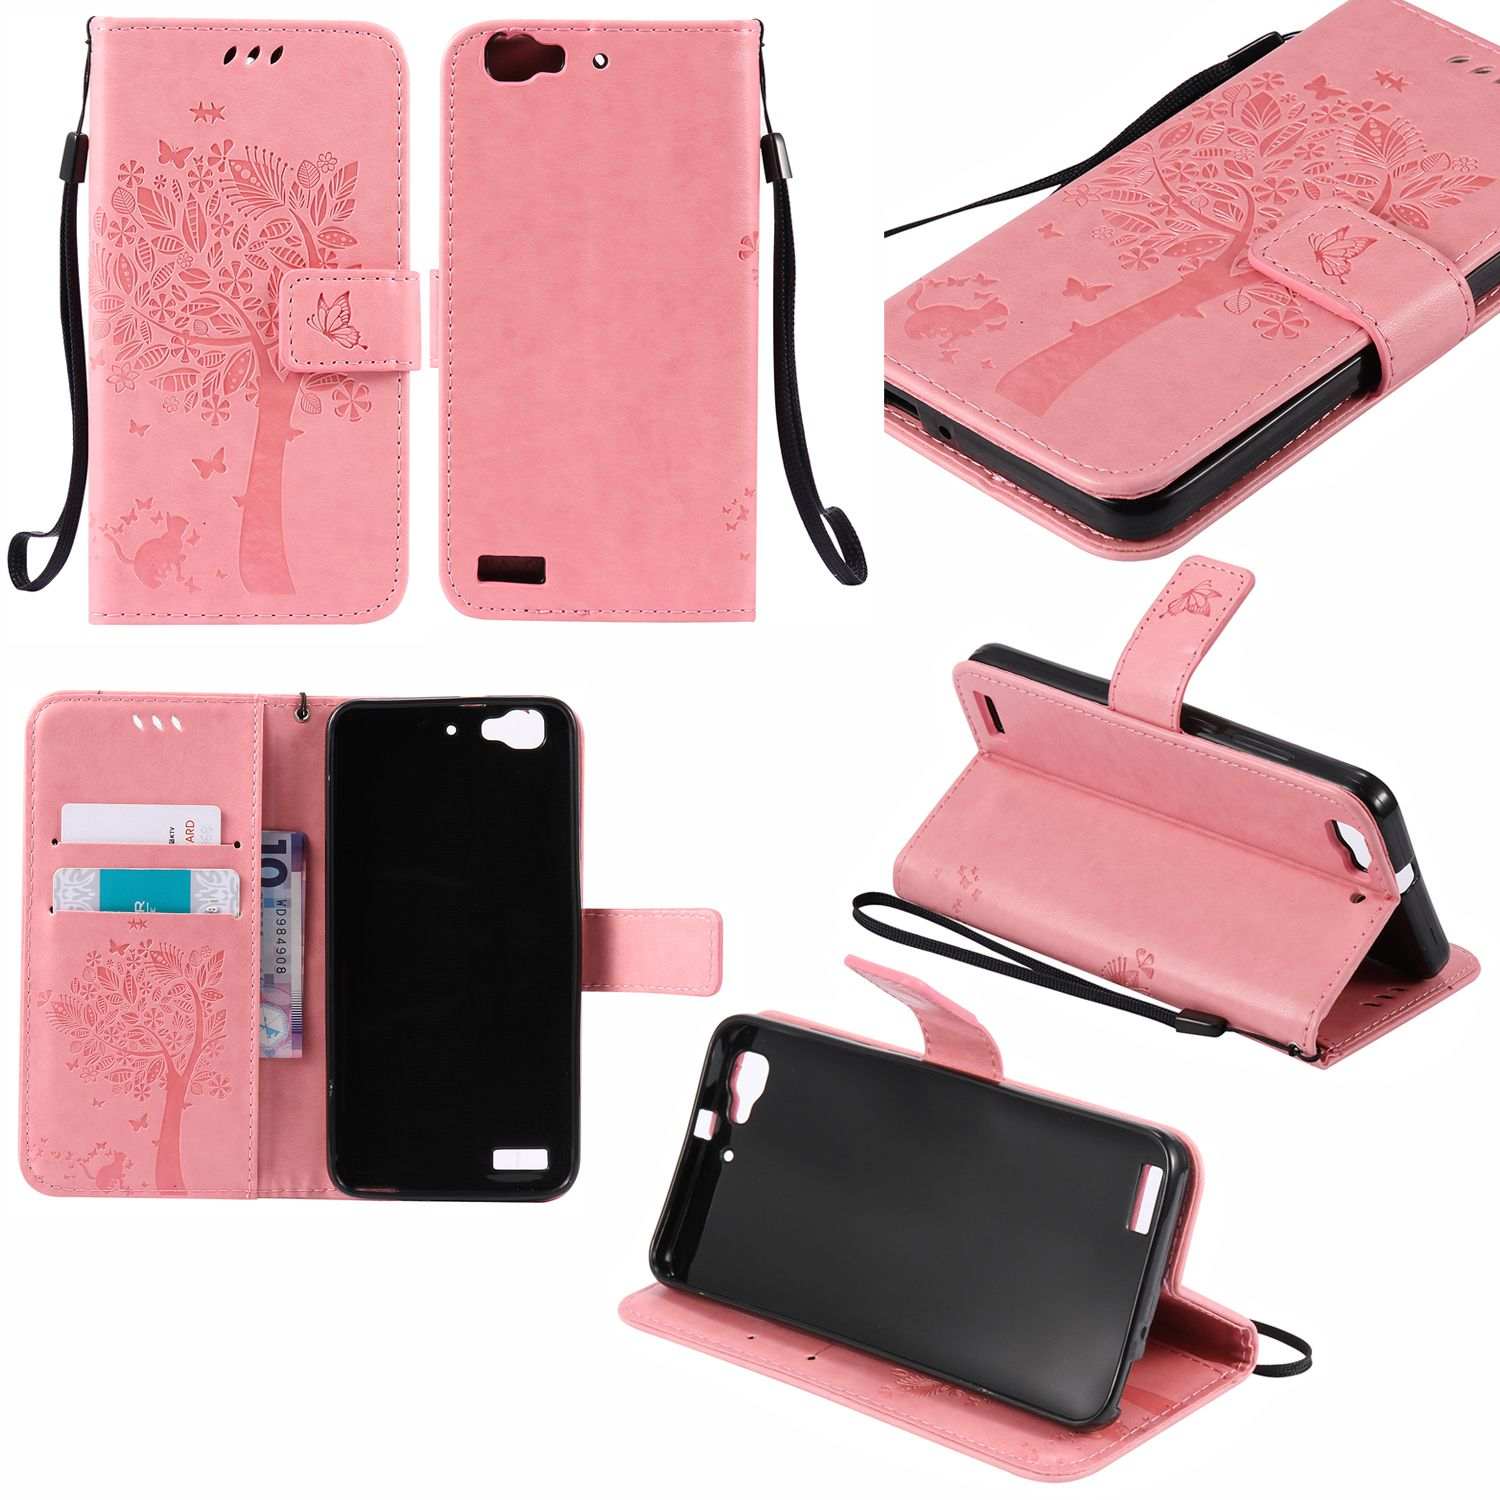 Flip Case For Huawei Gr 3 Gr3 Tag L03 L13 L21 L23 2in1 Military Armor Hard Soft Asus Zenfone Max 55 Zc553kl Leather Phone Cover L01 L22 Cases